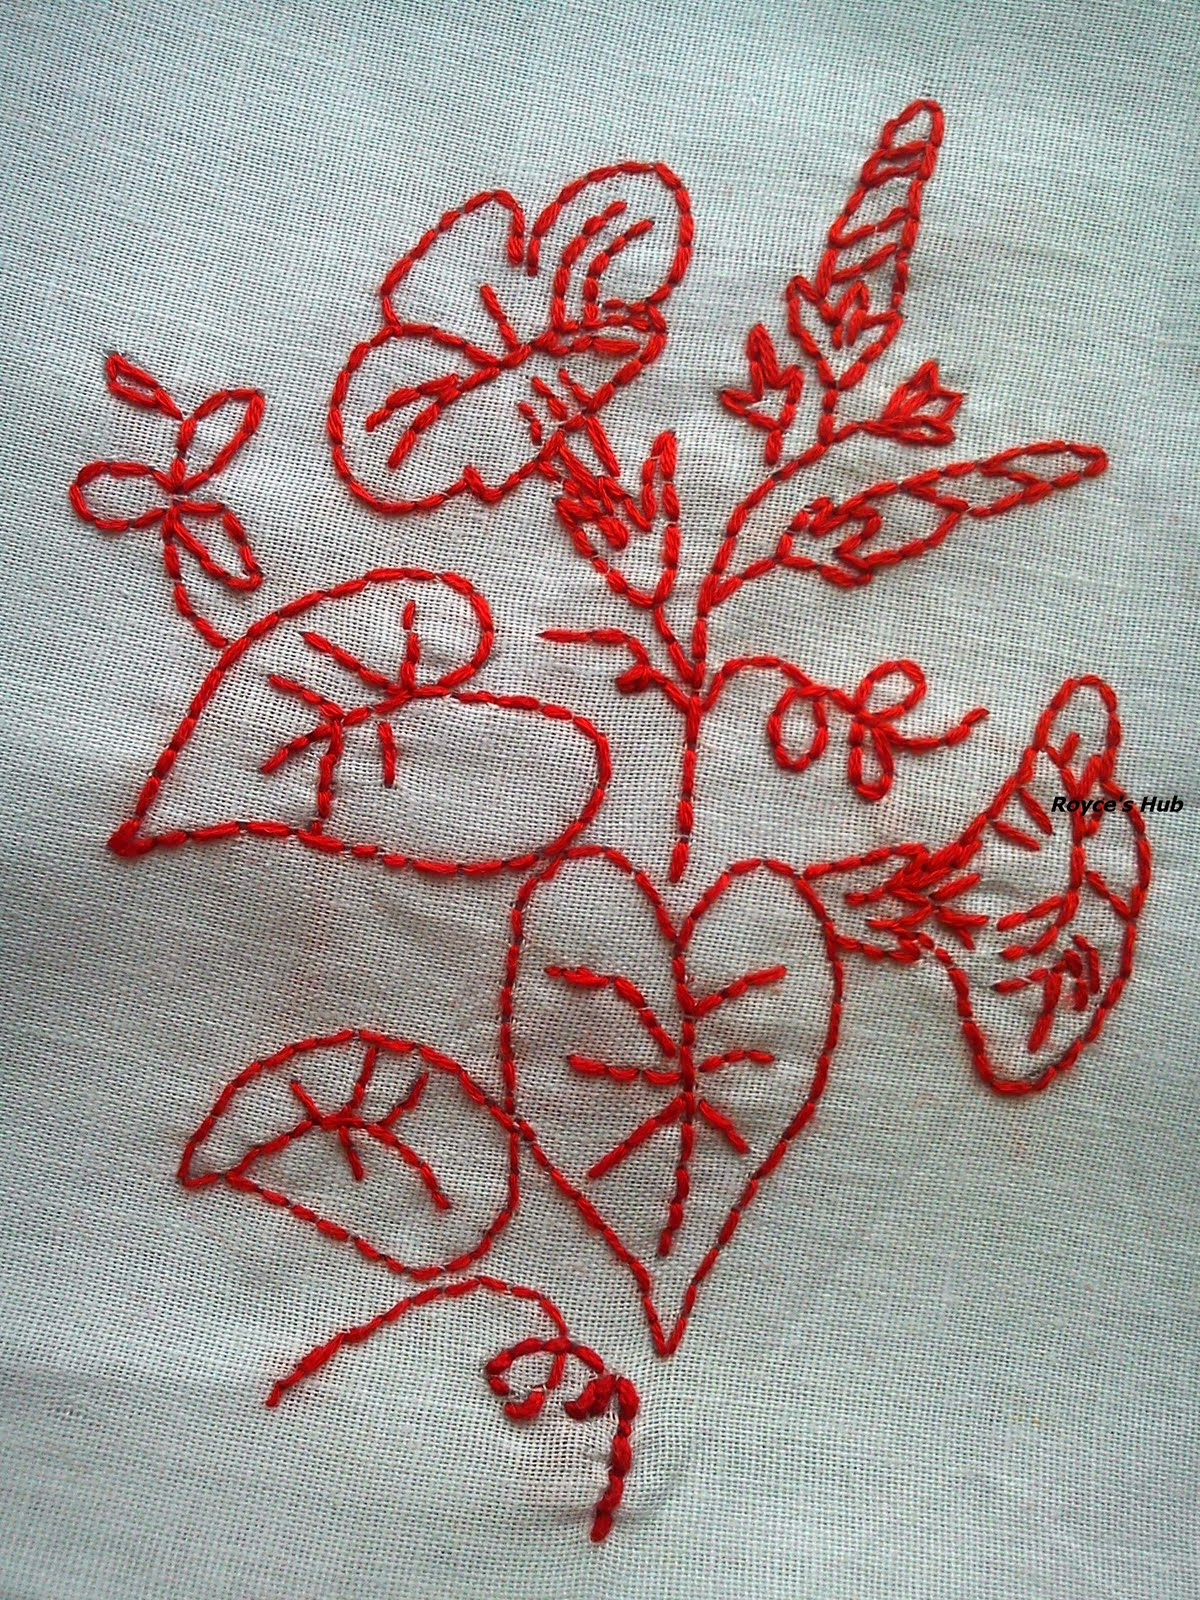 ... Hub: Basic Embroidery Stitches : Back Stitch in Redwork Embroidery